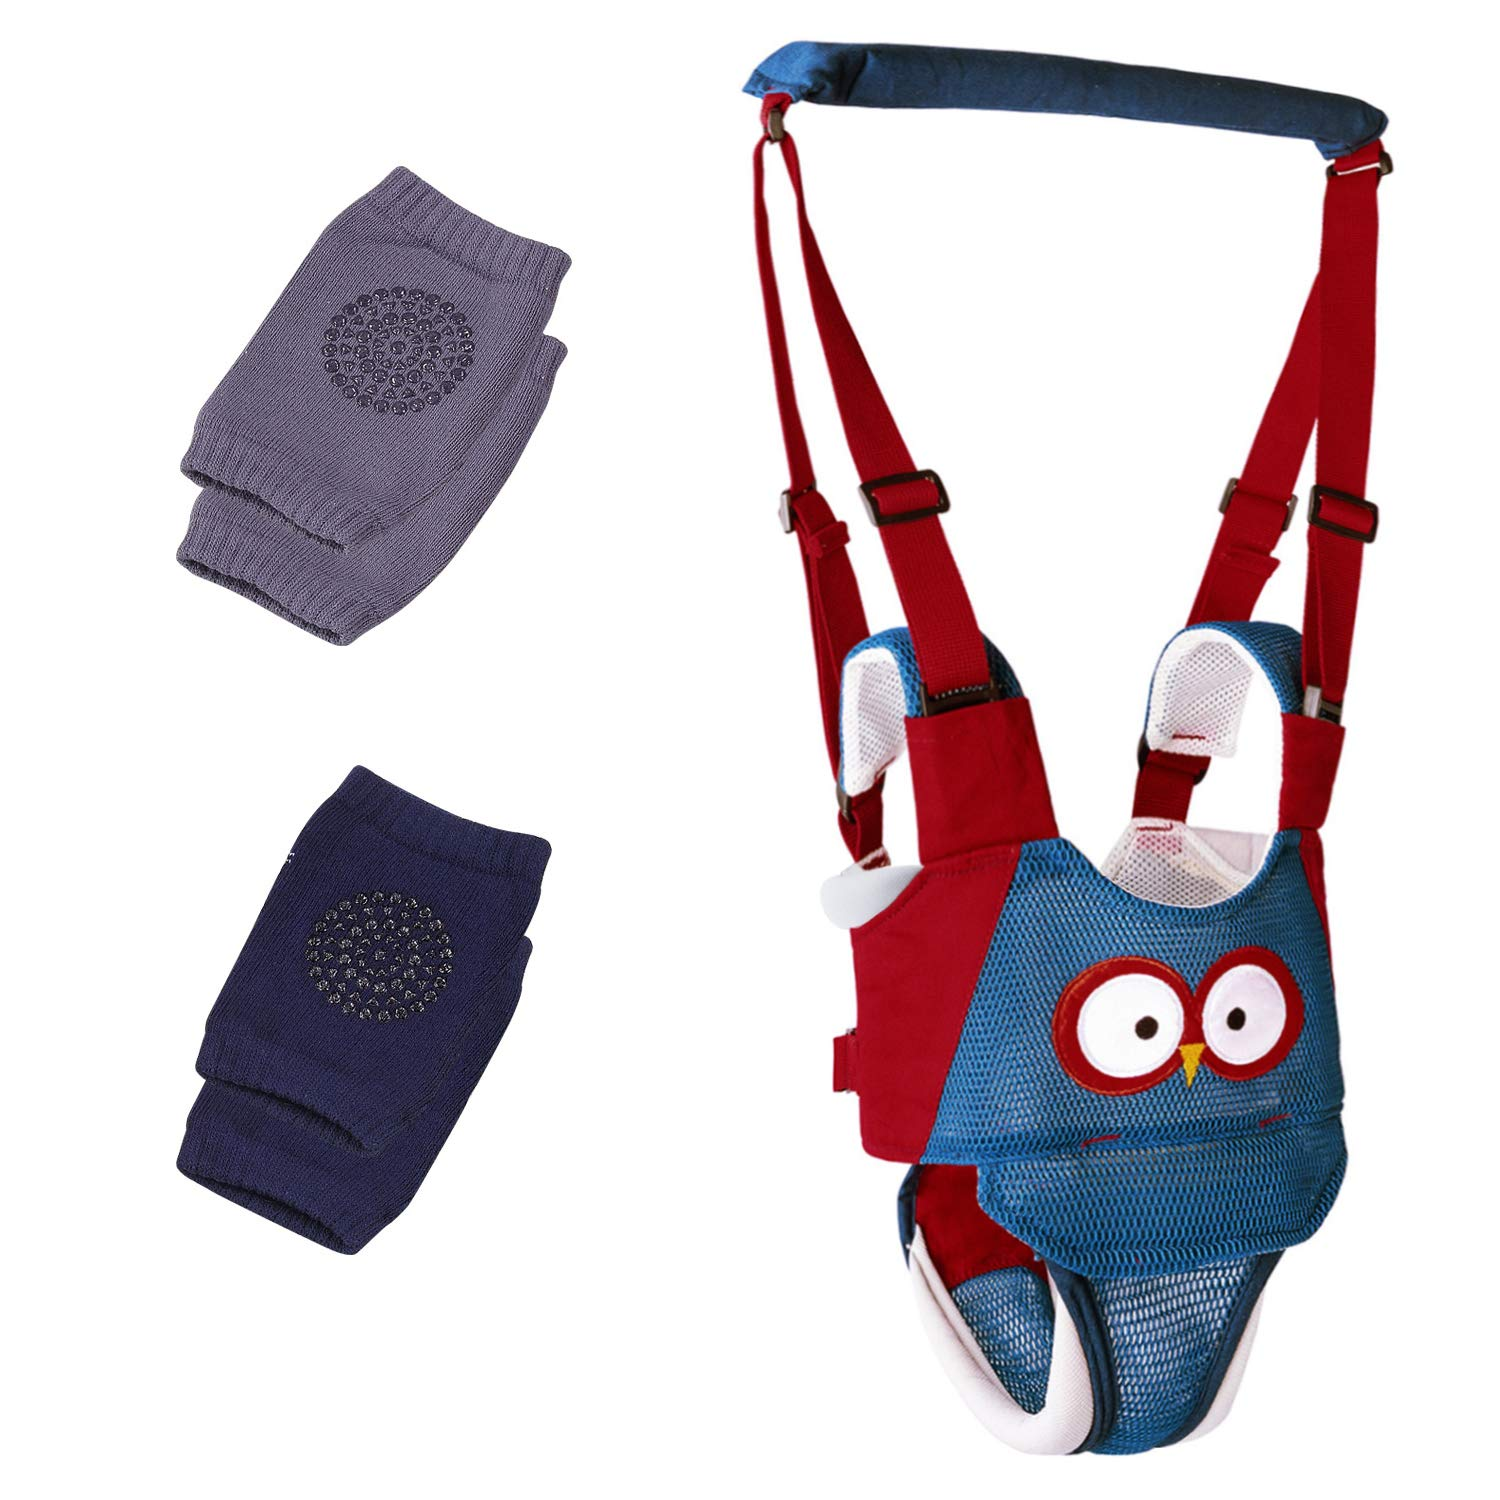 Baby Walking Harness,Adjustable Baby Walker Assistant Made of Breathable Knitted Fabric Layers,with Baby Crawling Knee Pads